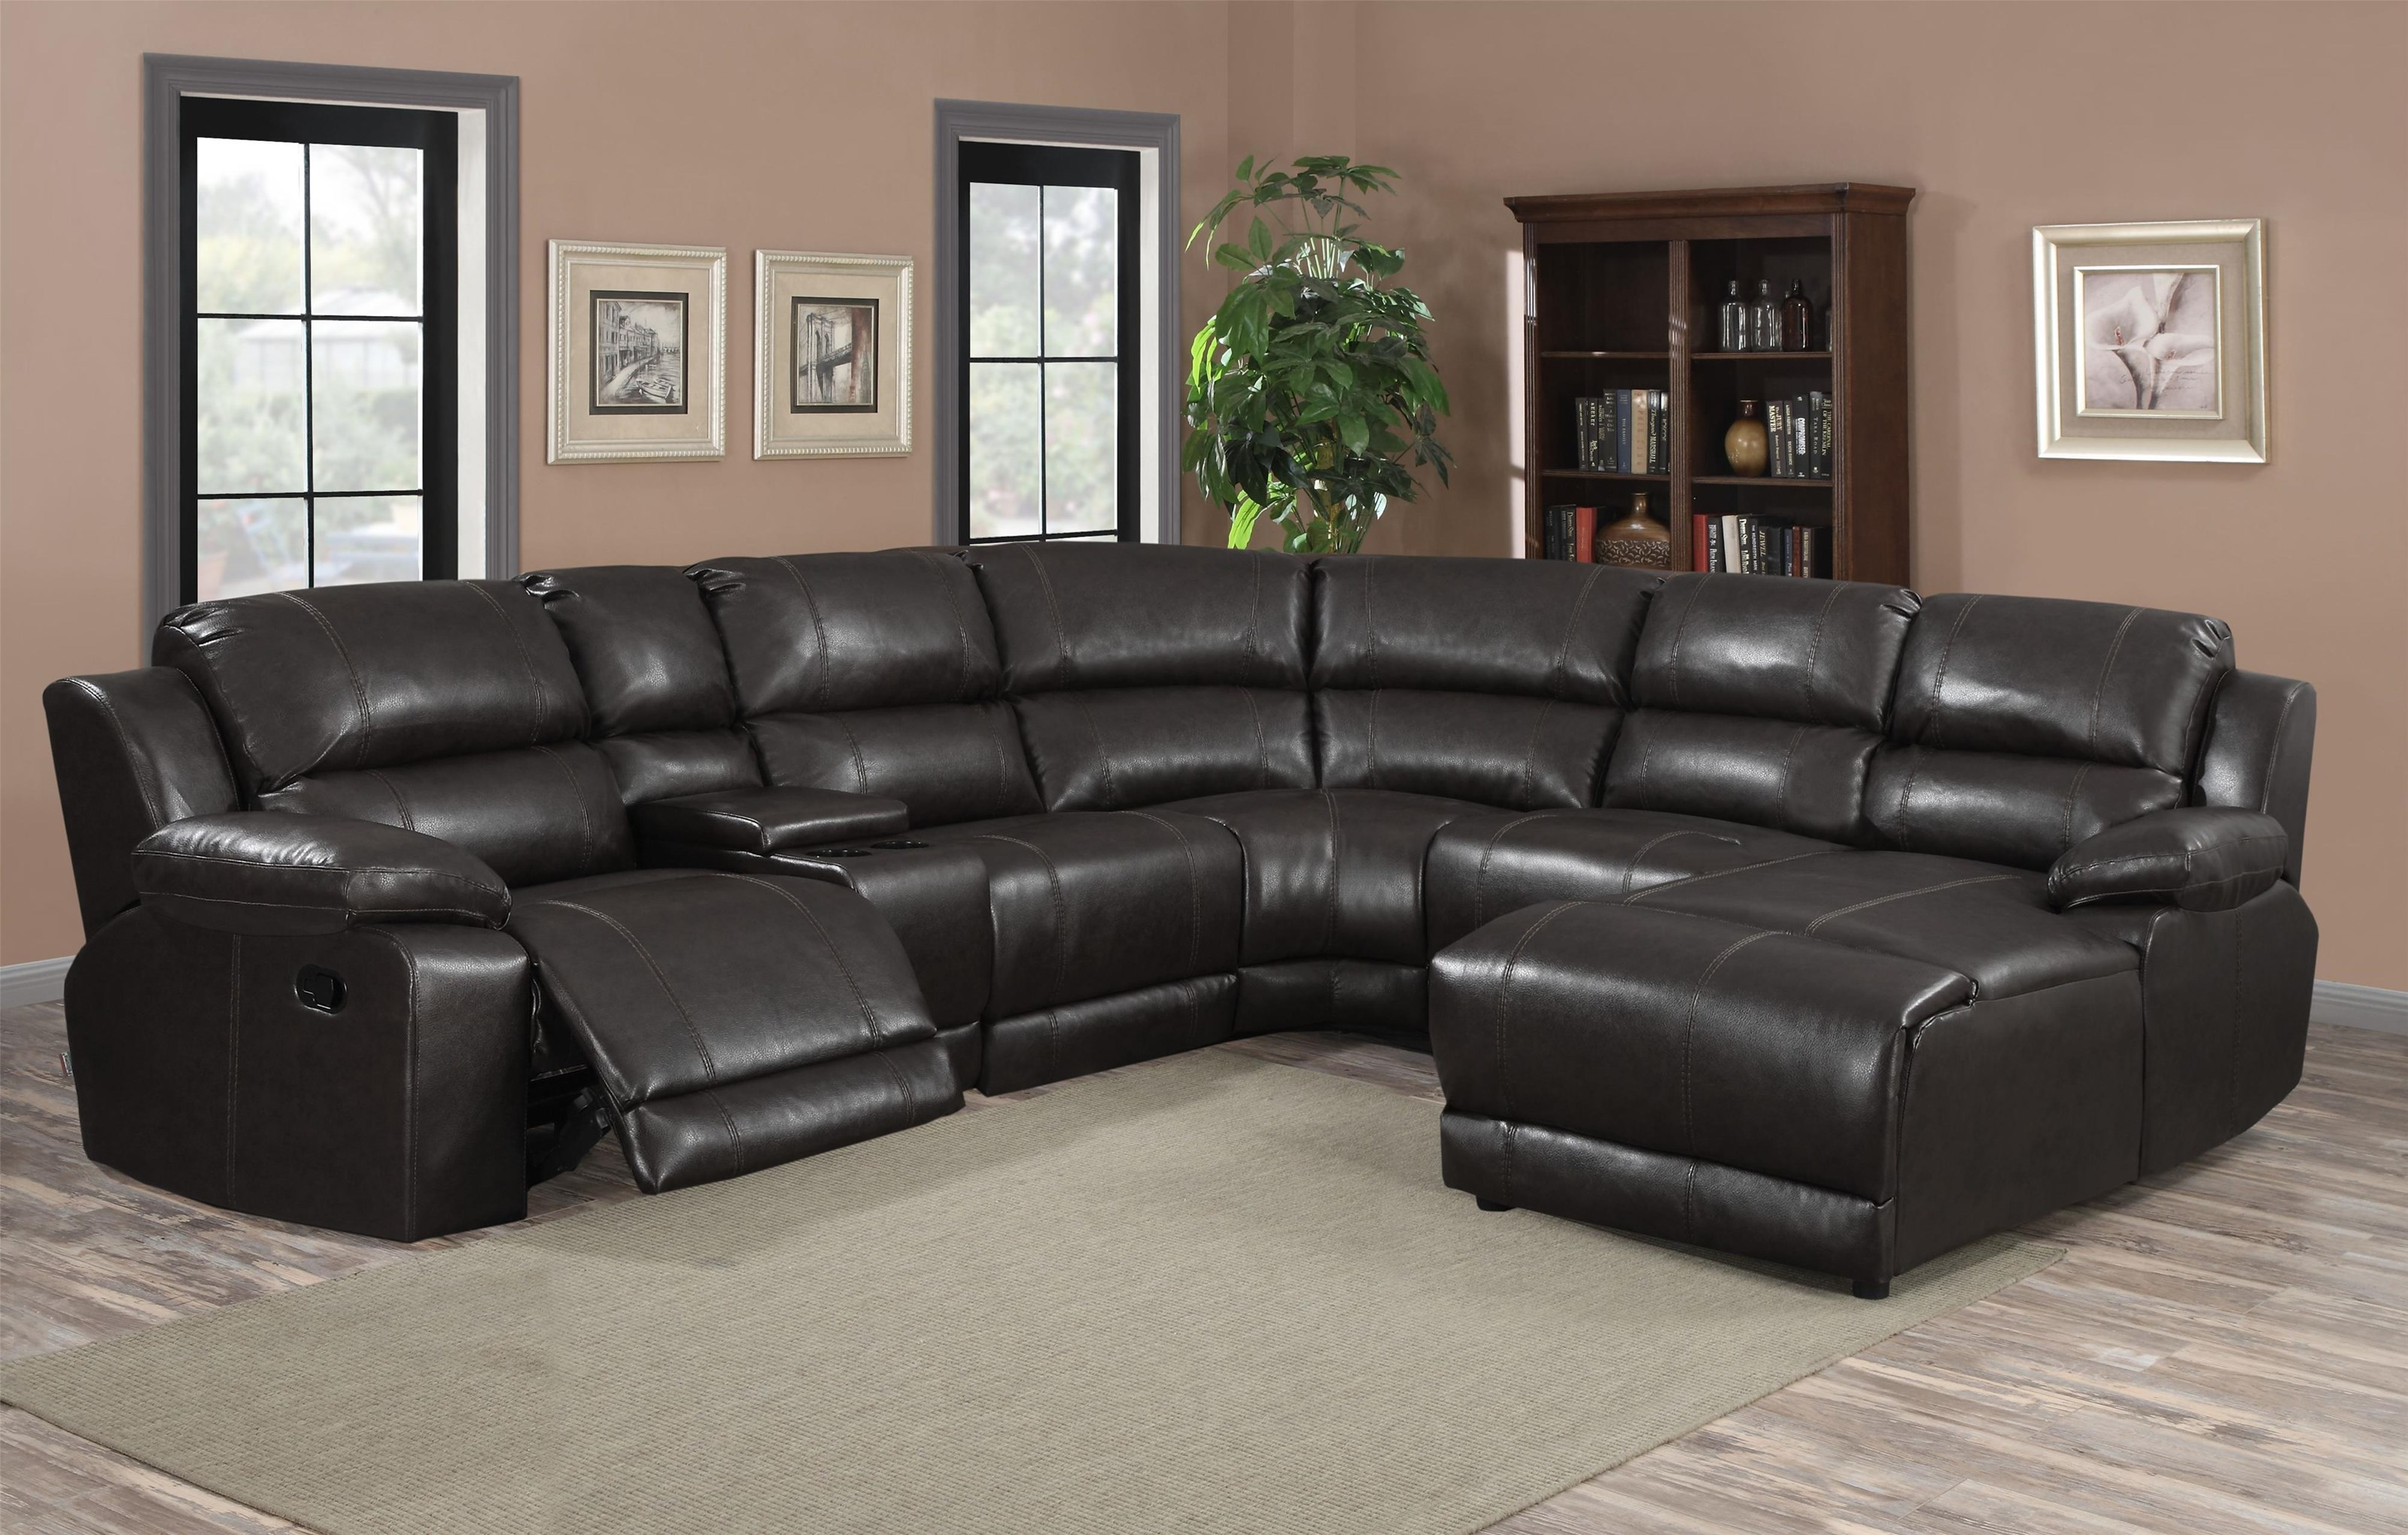 6 PC Charcoal Sectional